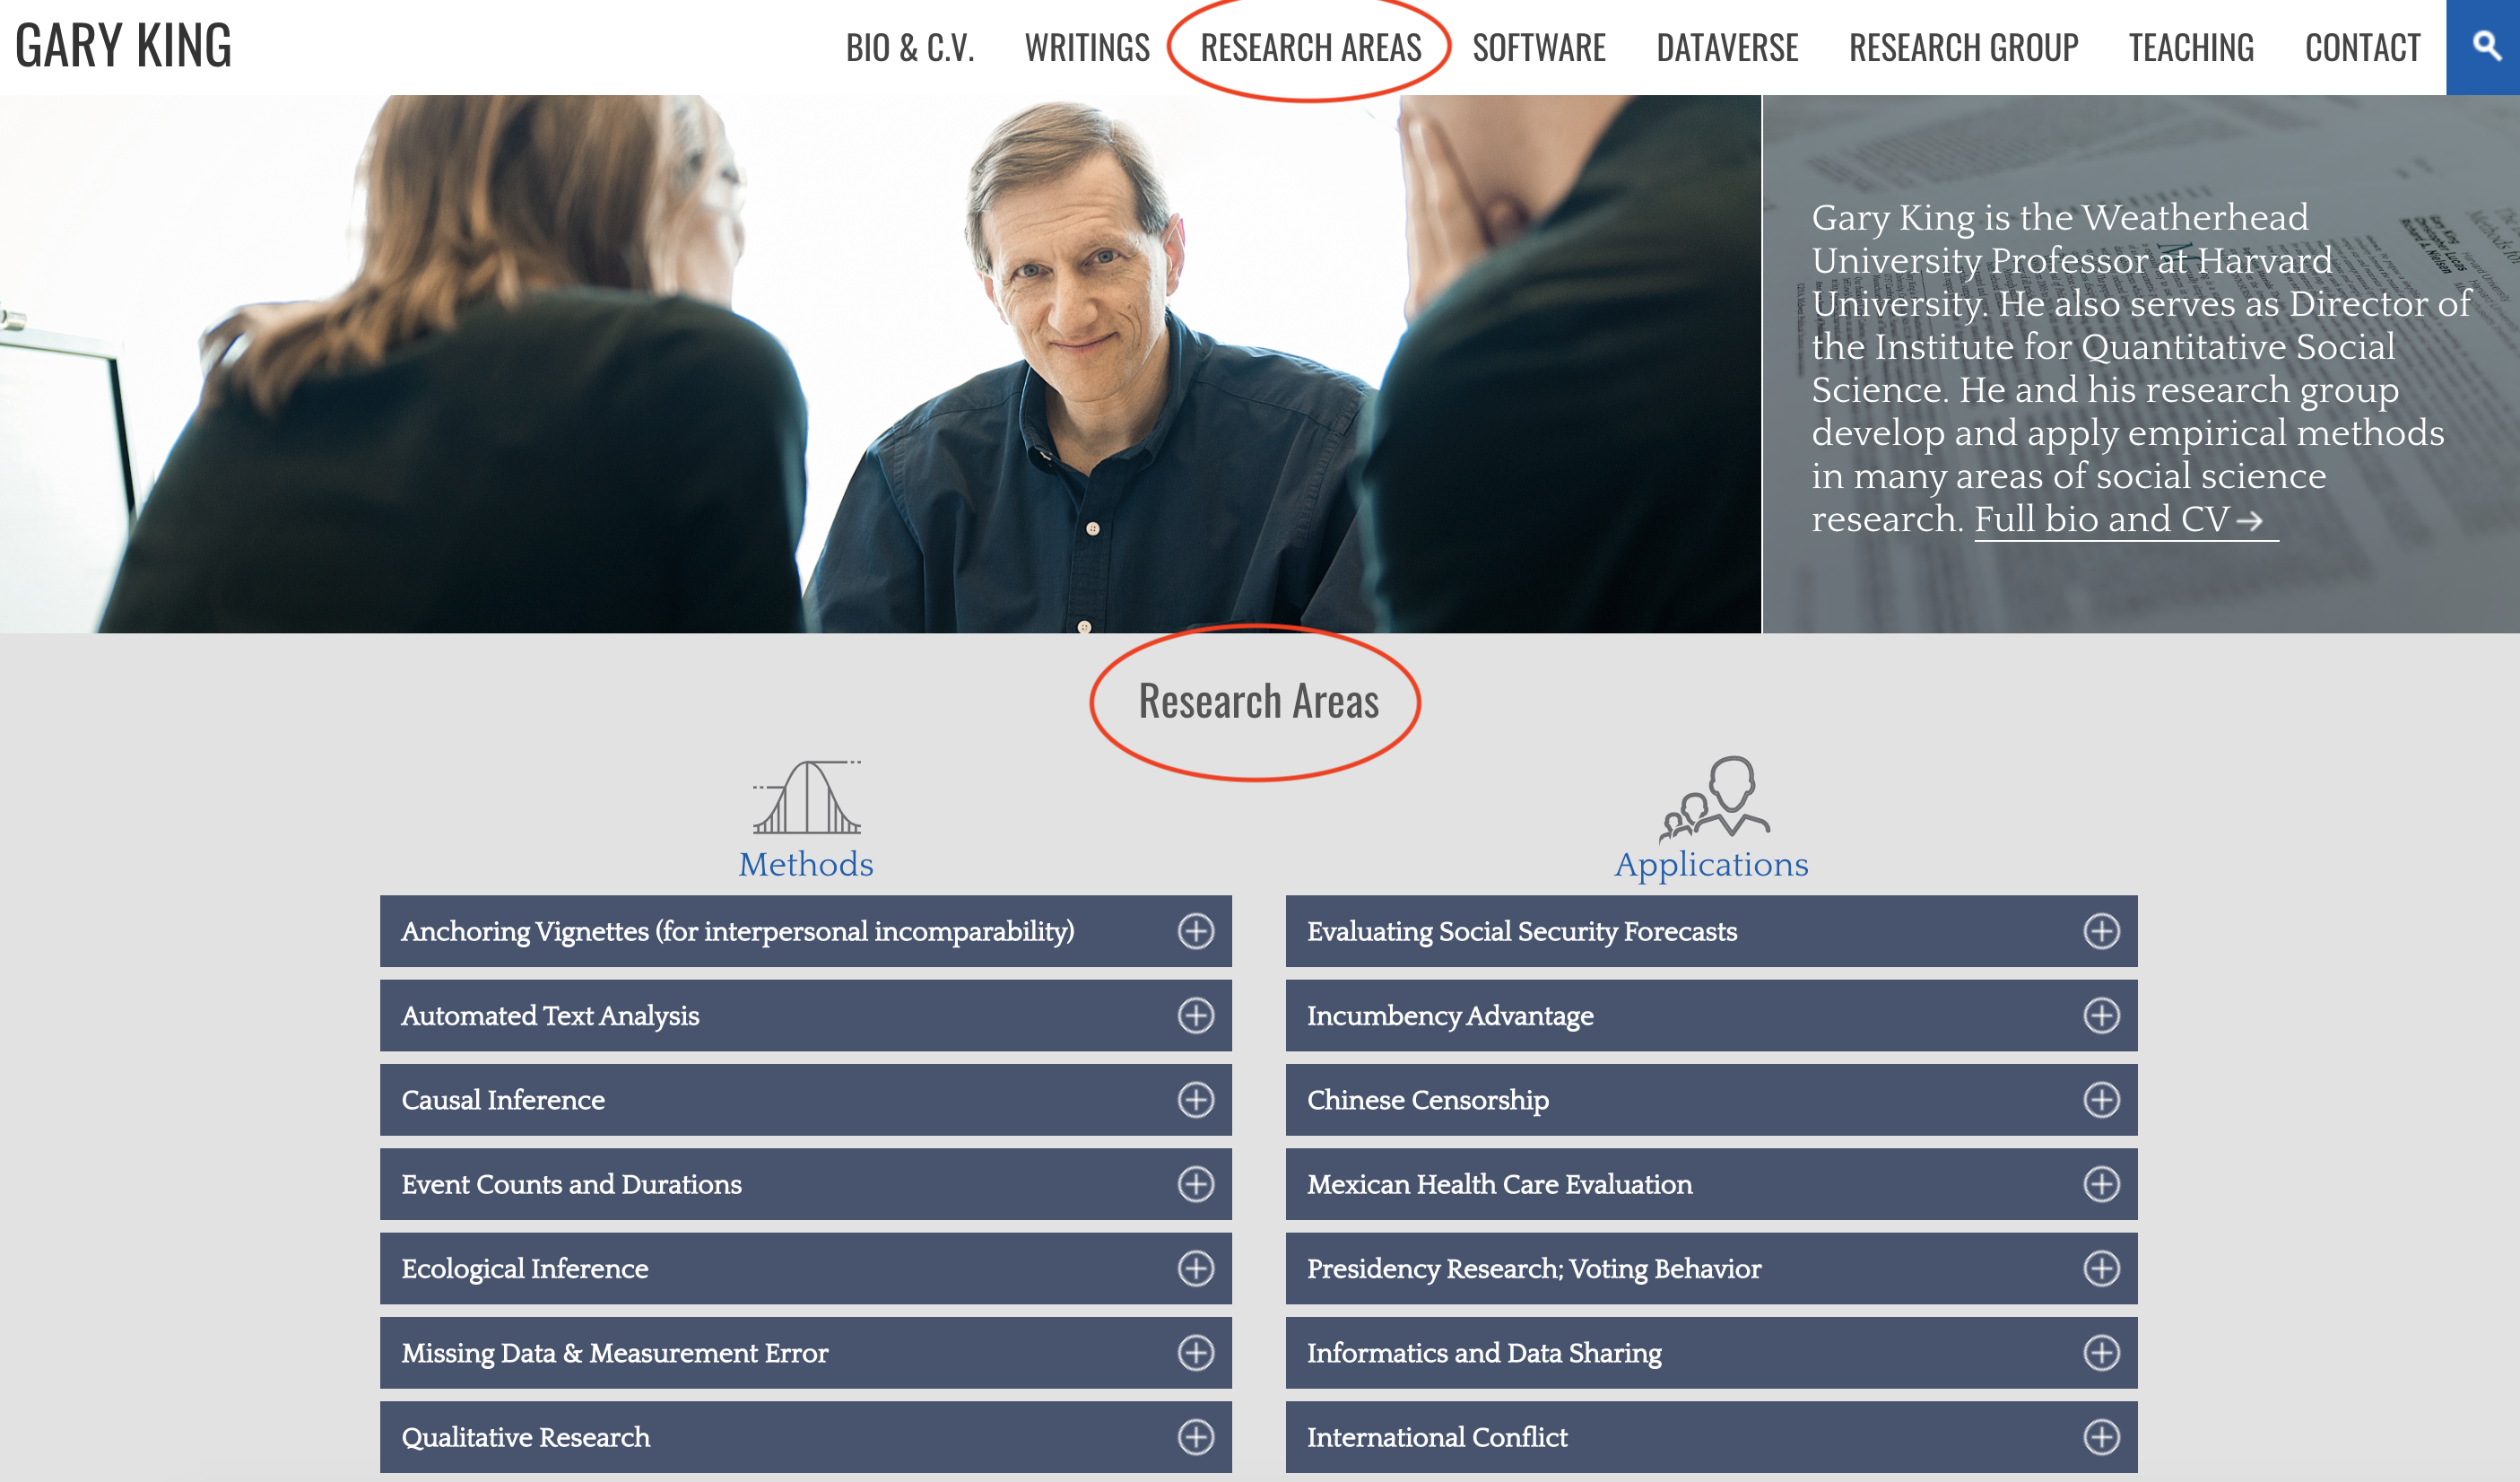 faculty website showcasing research